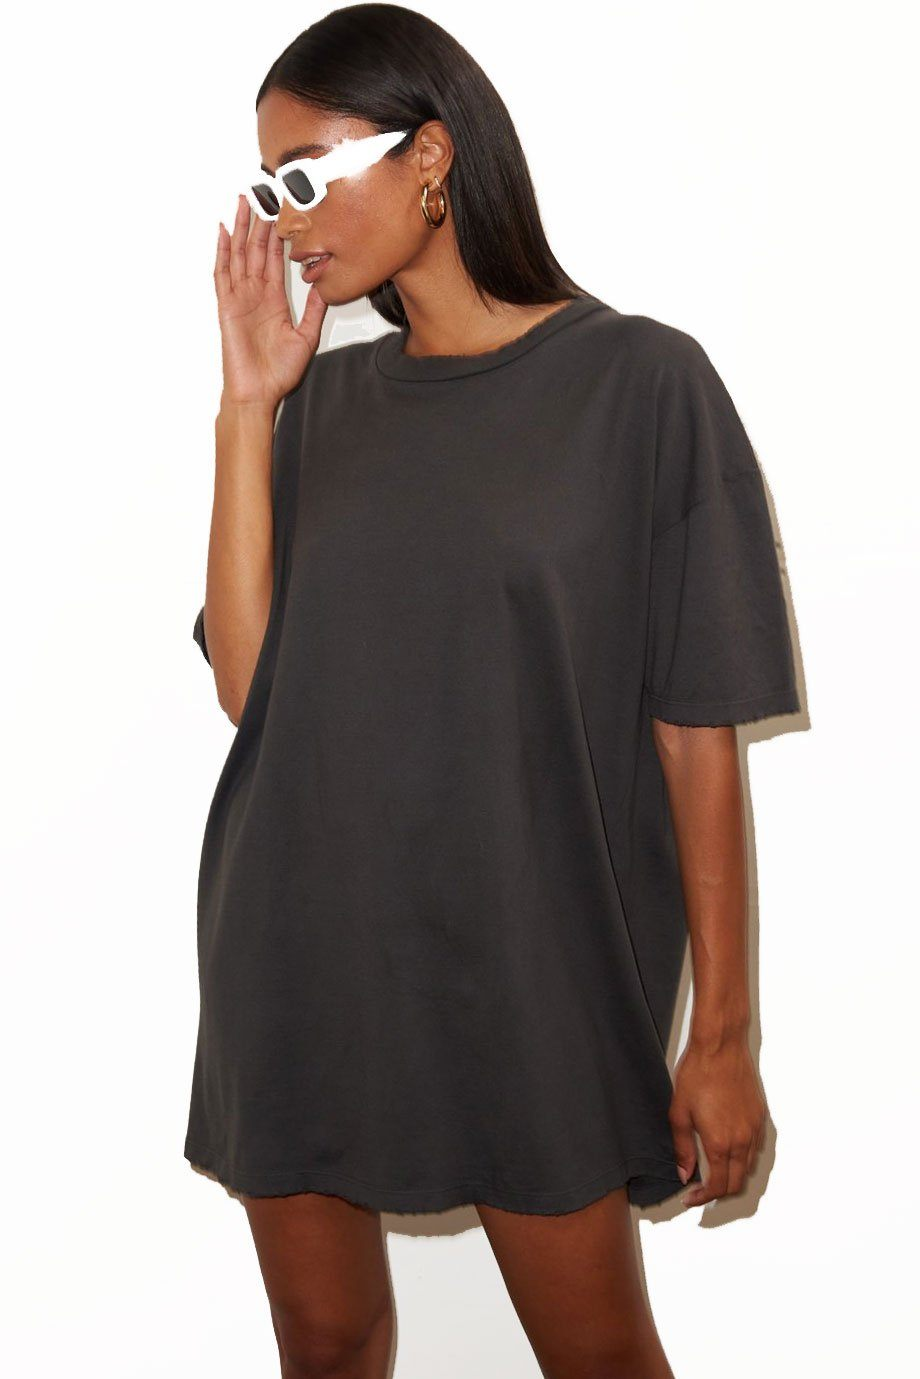 LNA | Oversized T-Shirt Dress - Pirate Black